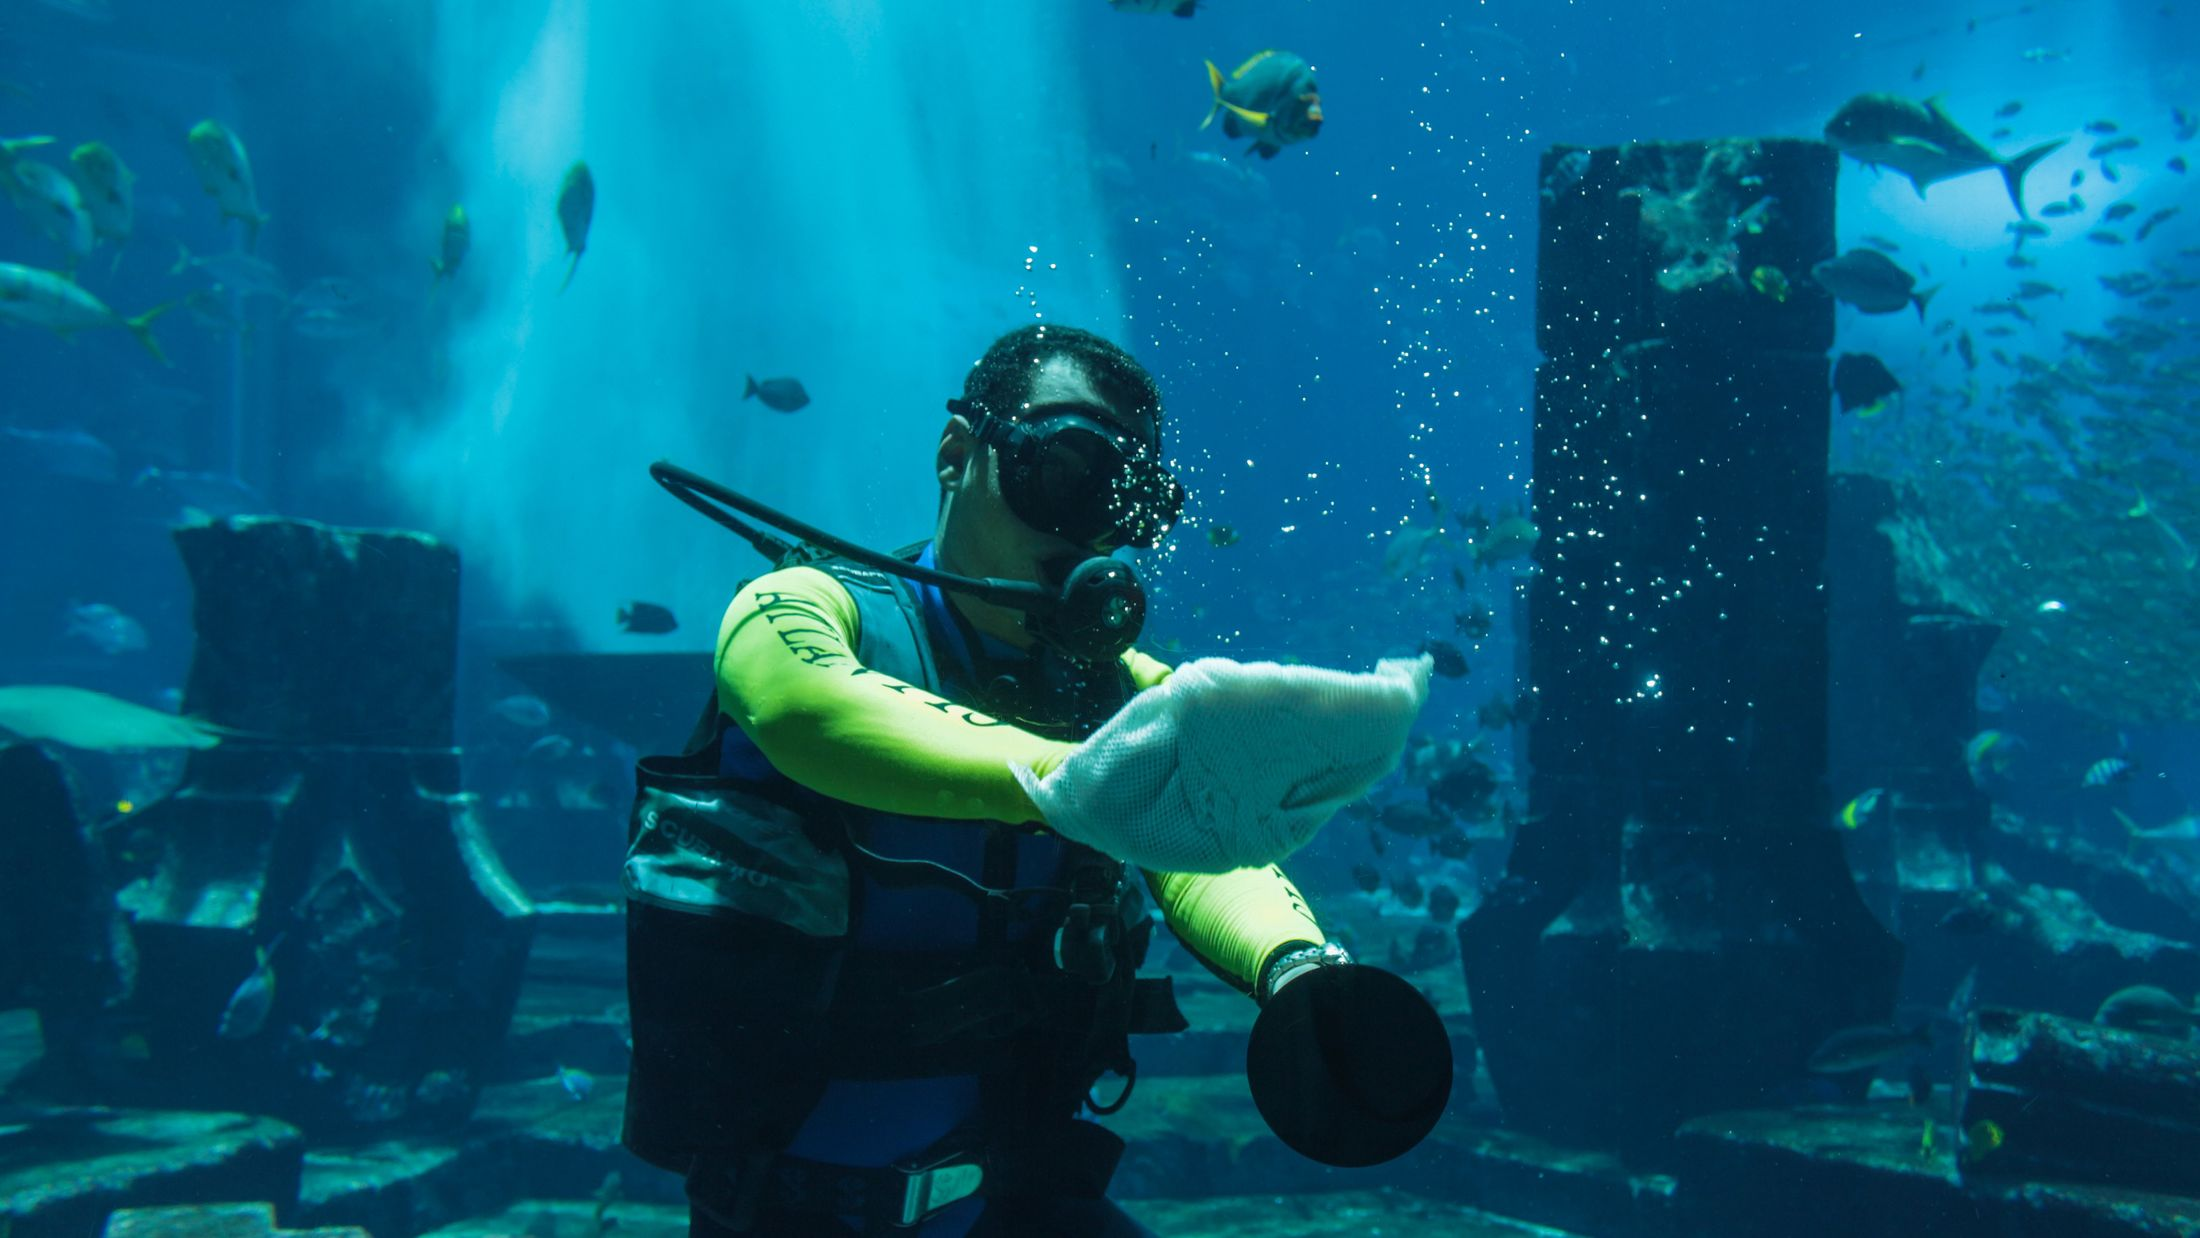 116853_Tank Cleaner Atlantis The Palm_Dubai_M Johnstone_Fam Trip_June 2015-001-Hybris